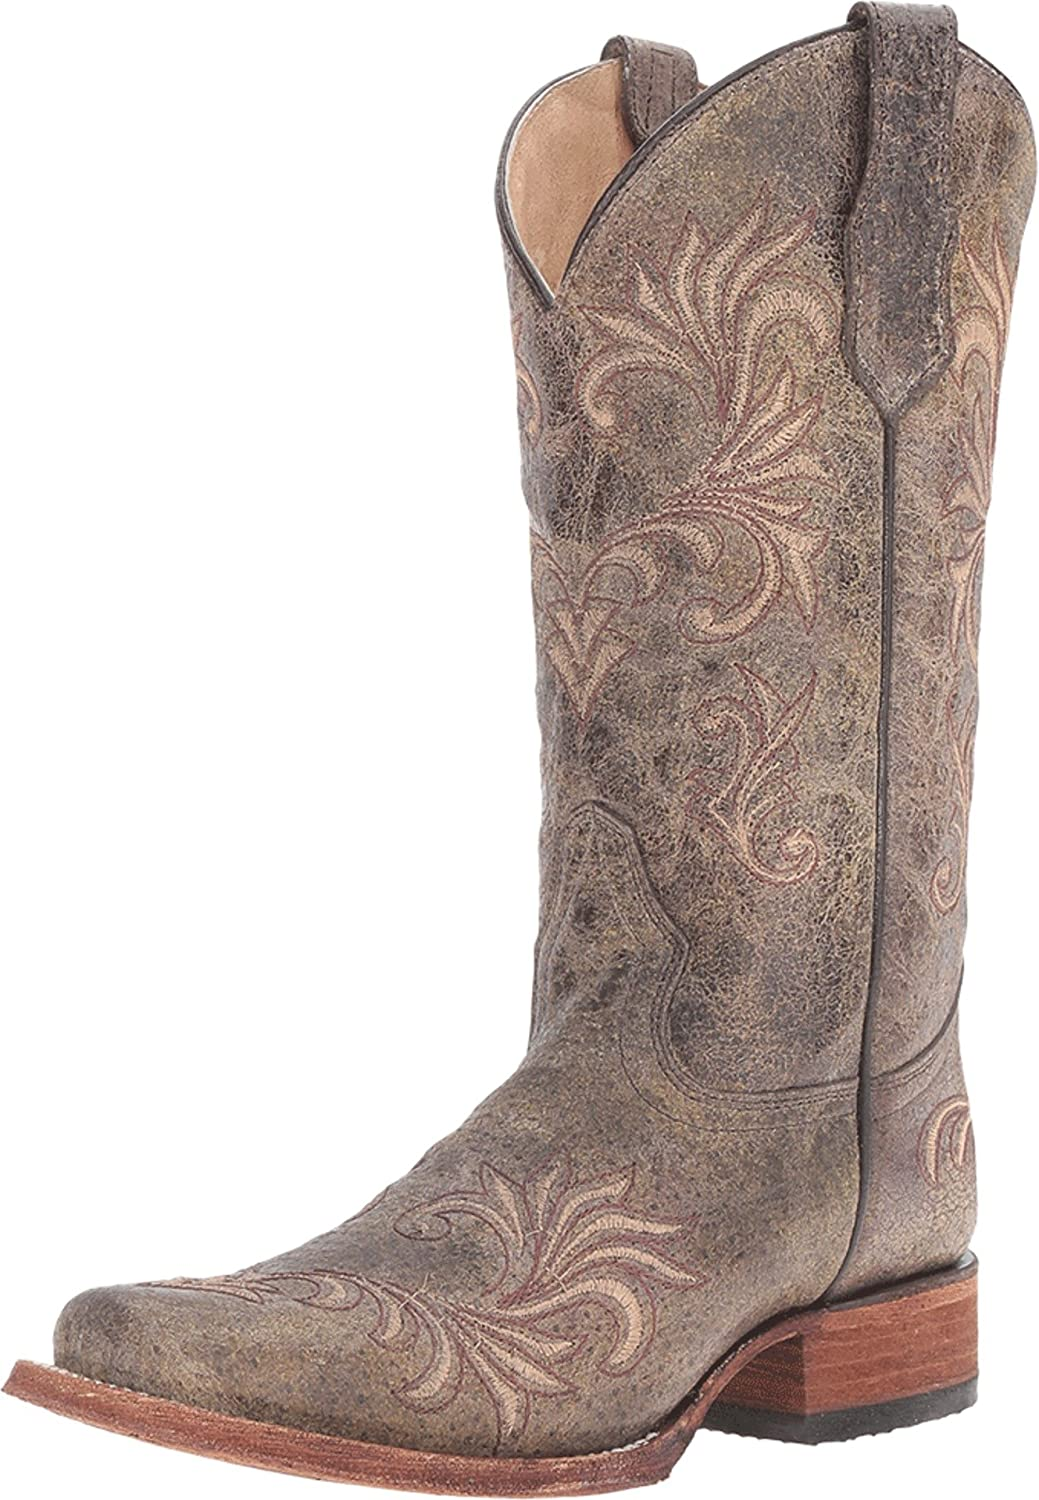 Corral Circle G Women's Square Toe Distressed Antique Green Leather Cowgirl Boots B01F31XVCO 5 B(M) US|Green/Beige